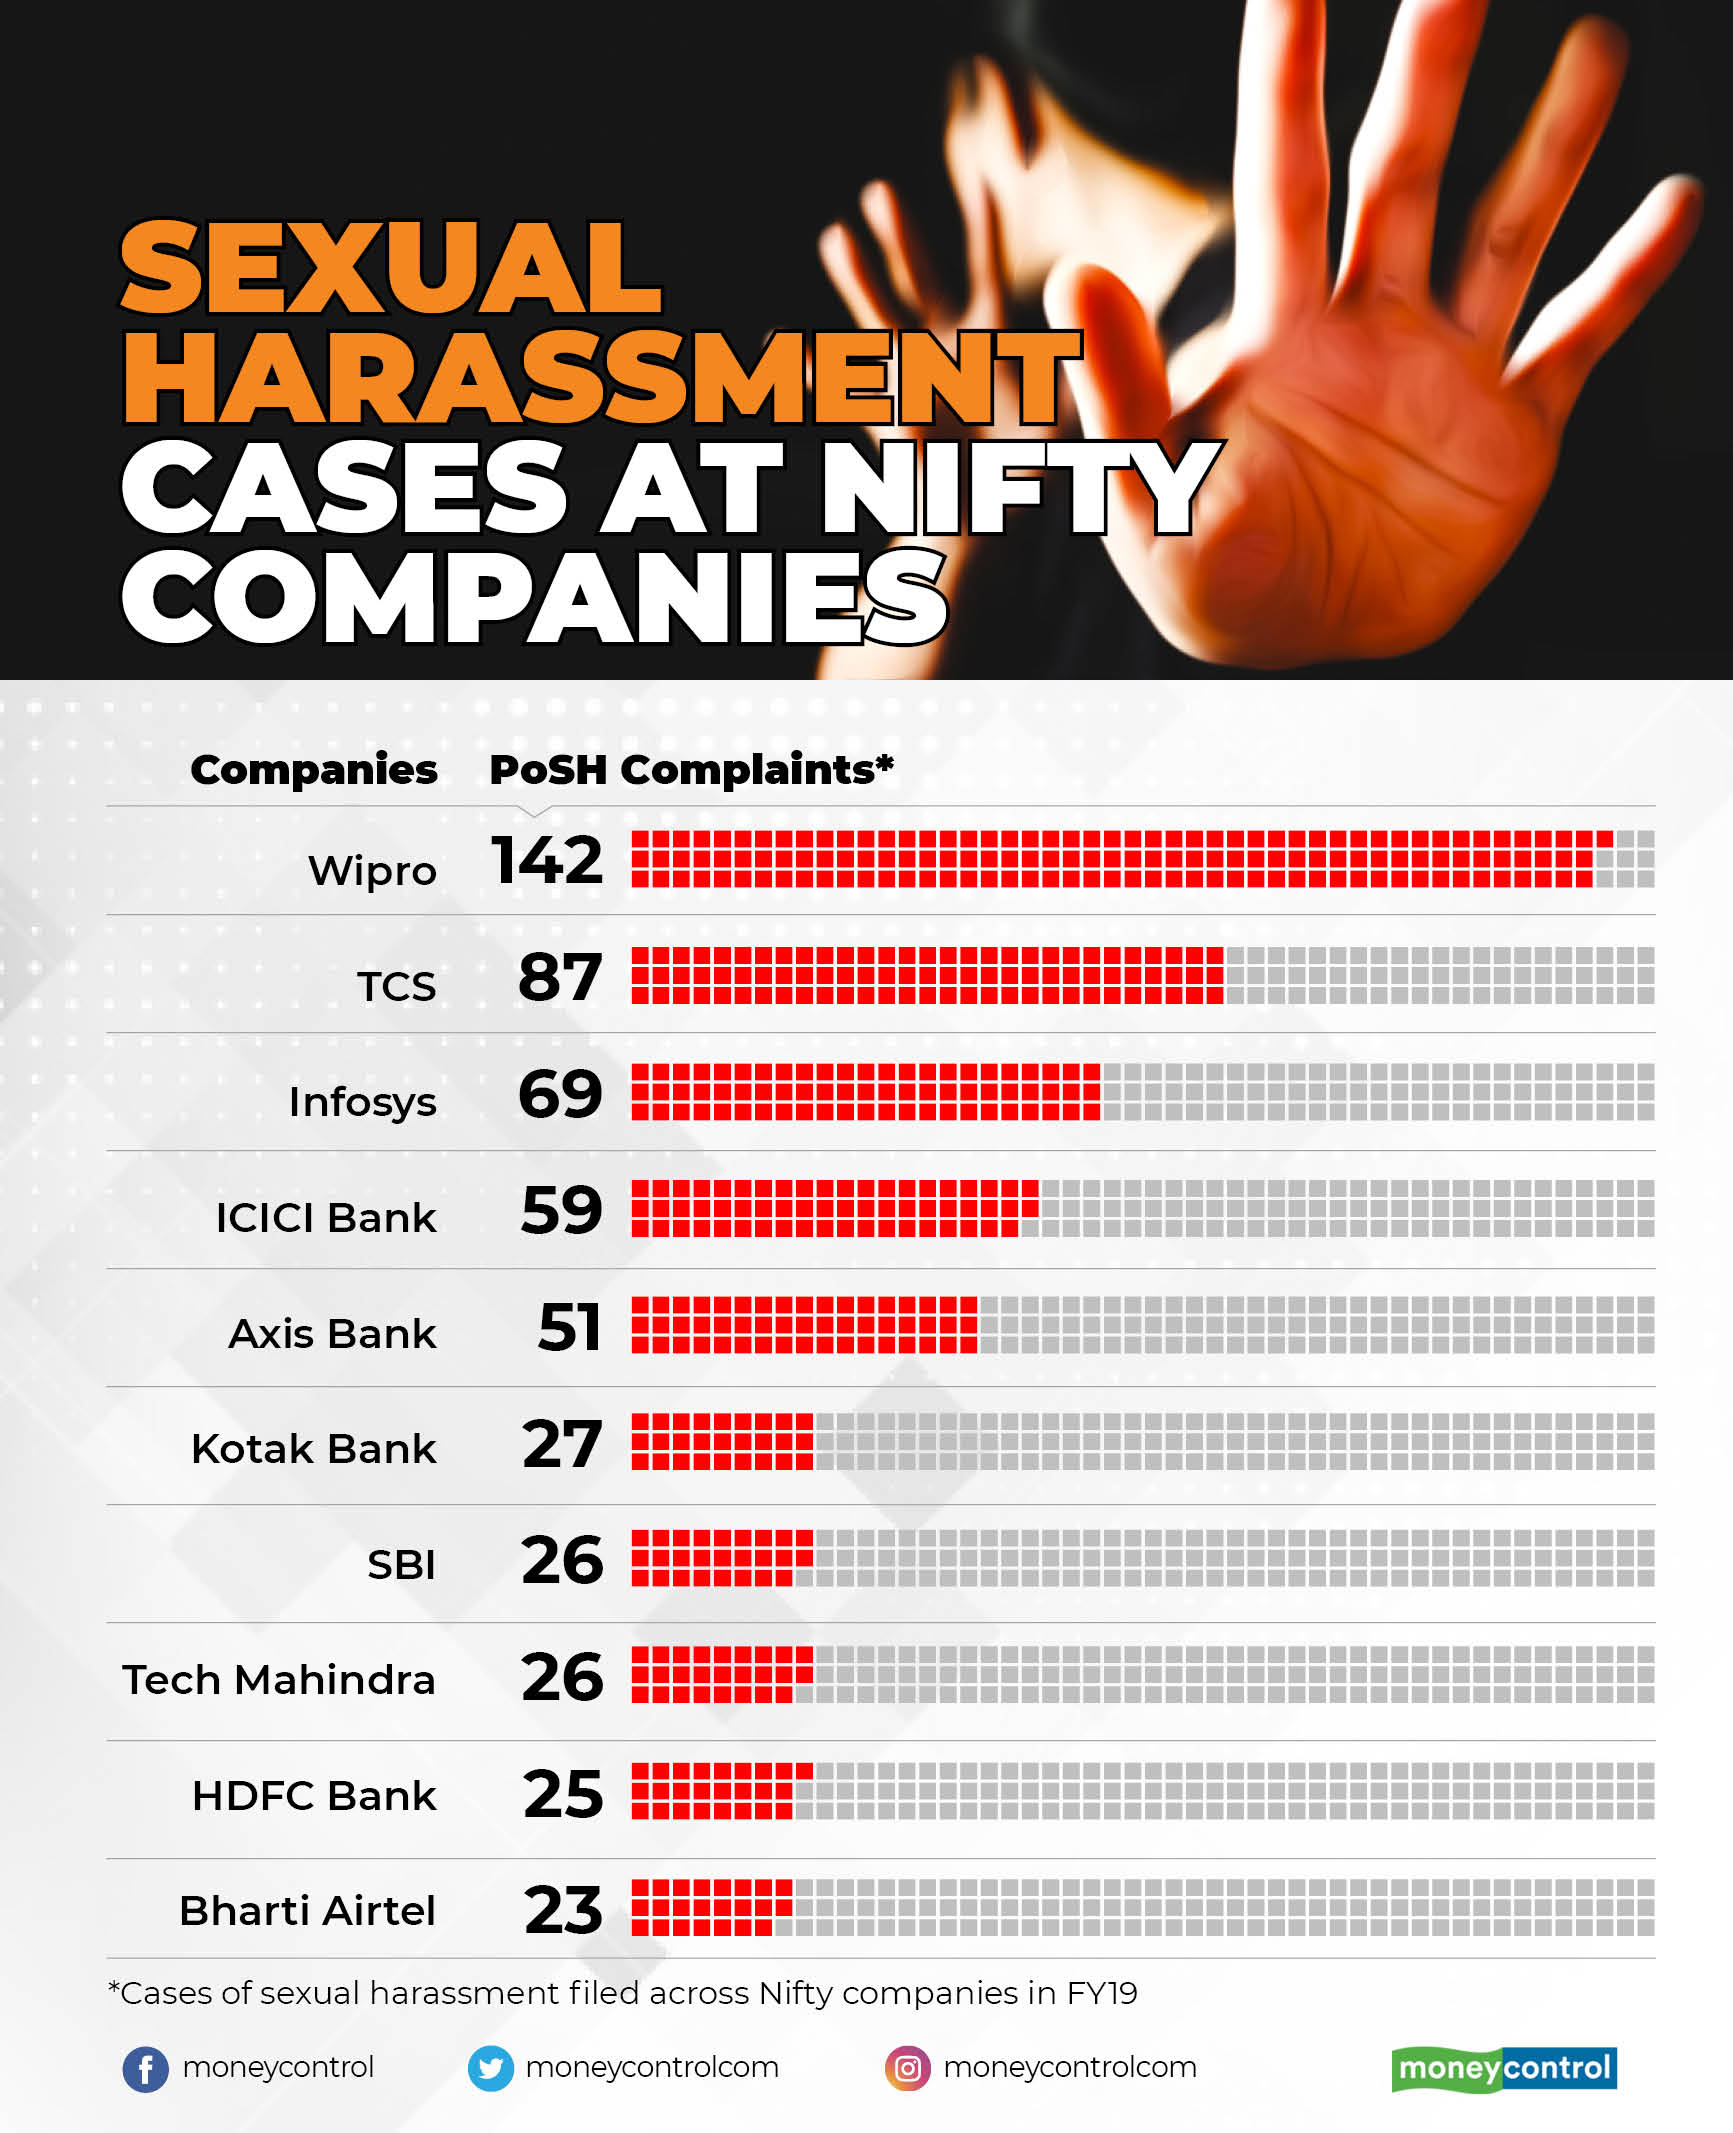 Sexual Harassment Cases at Nifty Companies